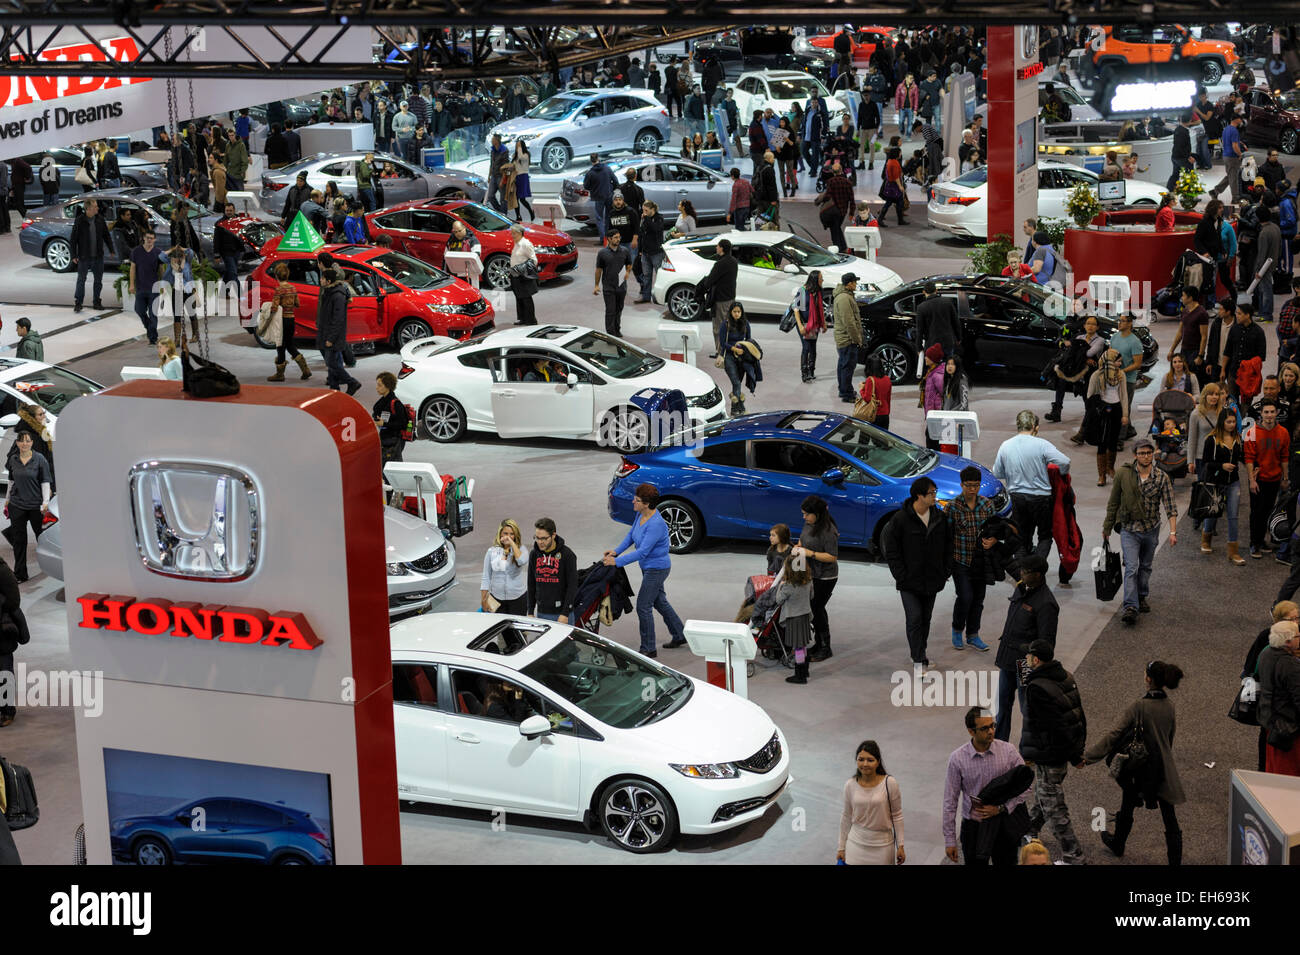 Section of Honda at Autoshow Toronto. - Stock Image